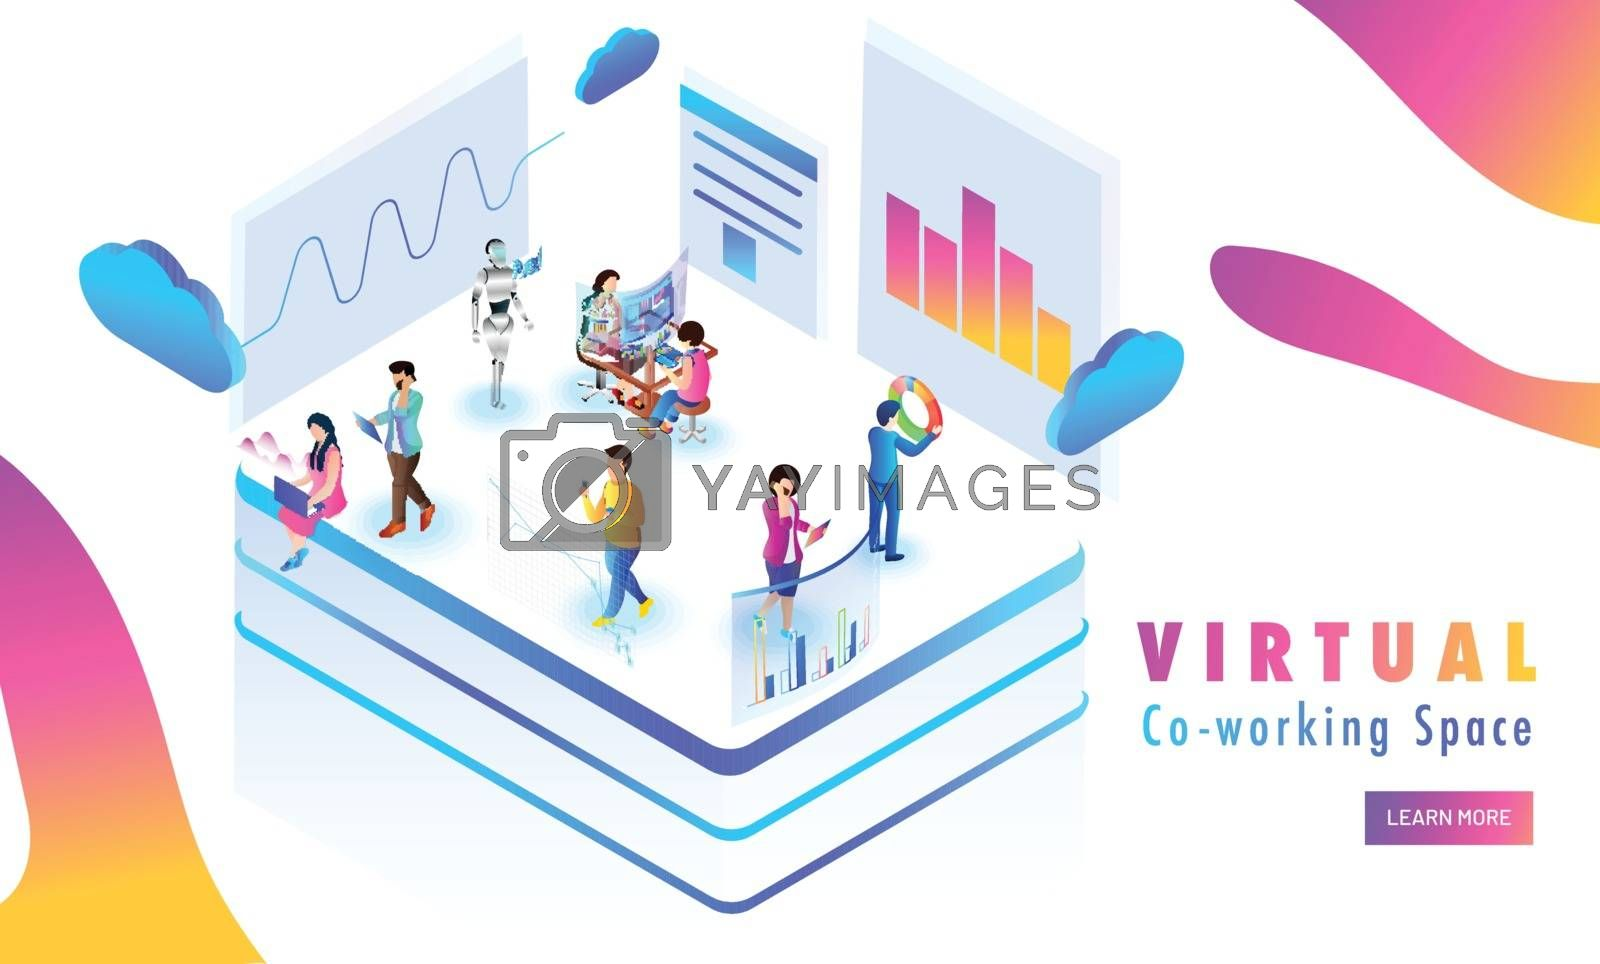 Virtual Co-Working platform, miniature people analysis data or stats on abstract background. Responsive web template design.